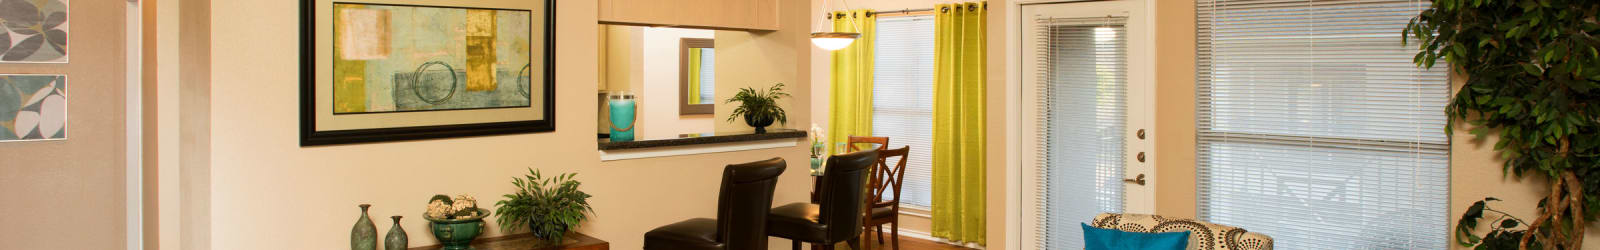 Schedule a tour at El Lago Apartments in McKinney, Texas